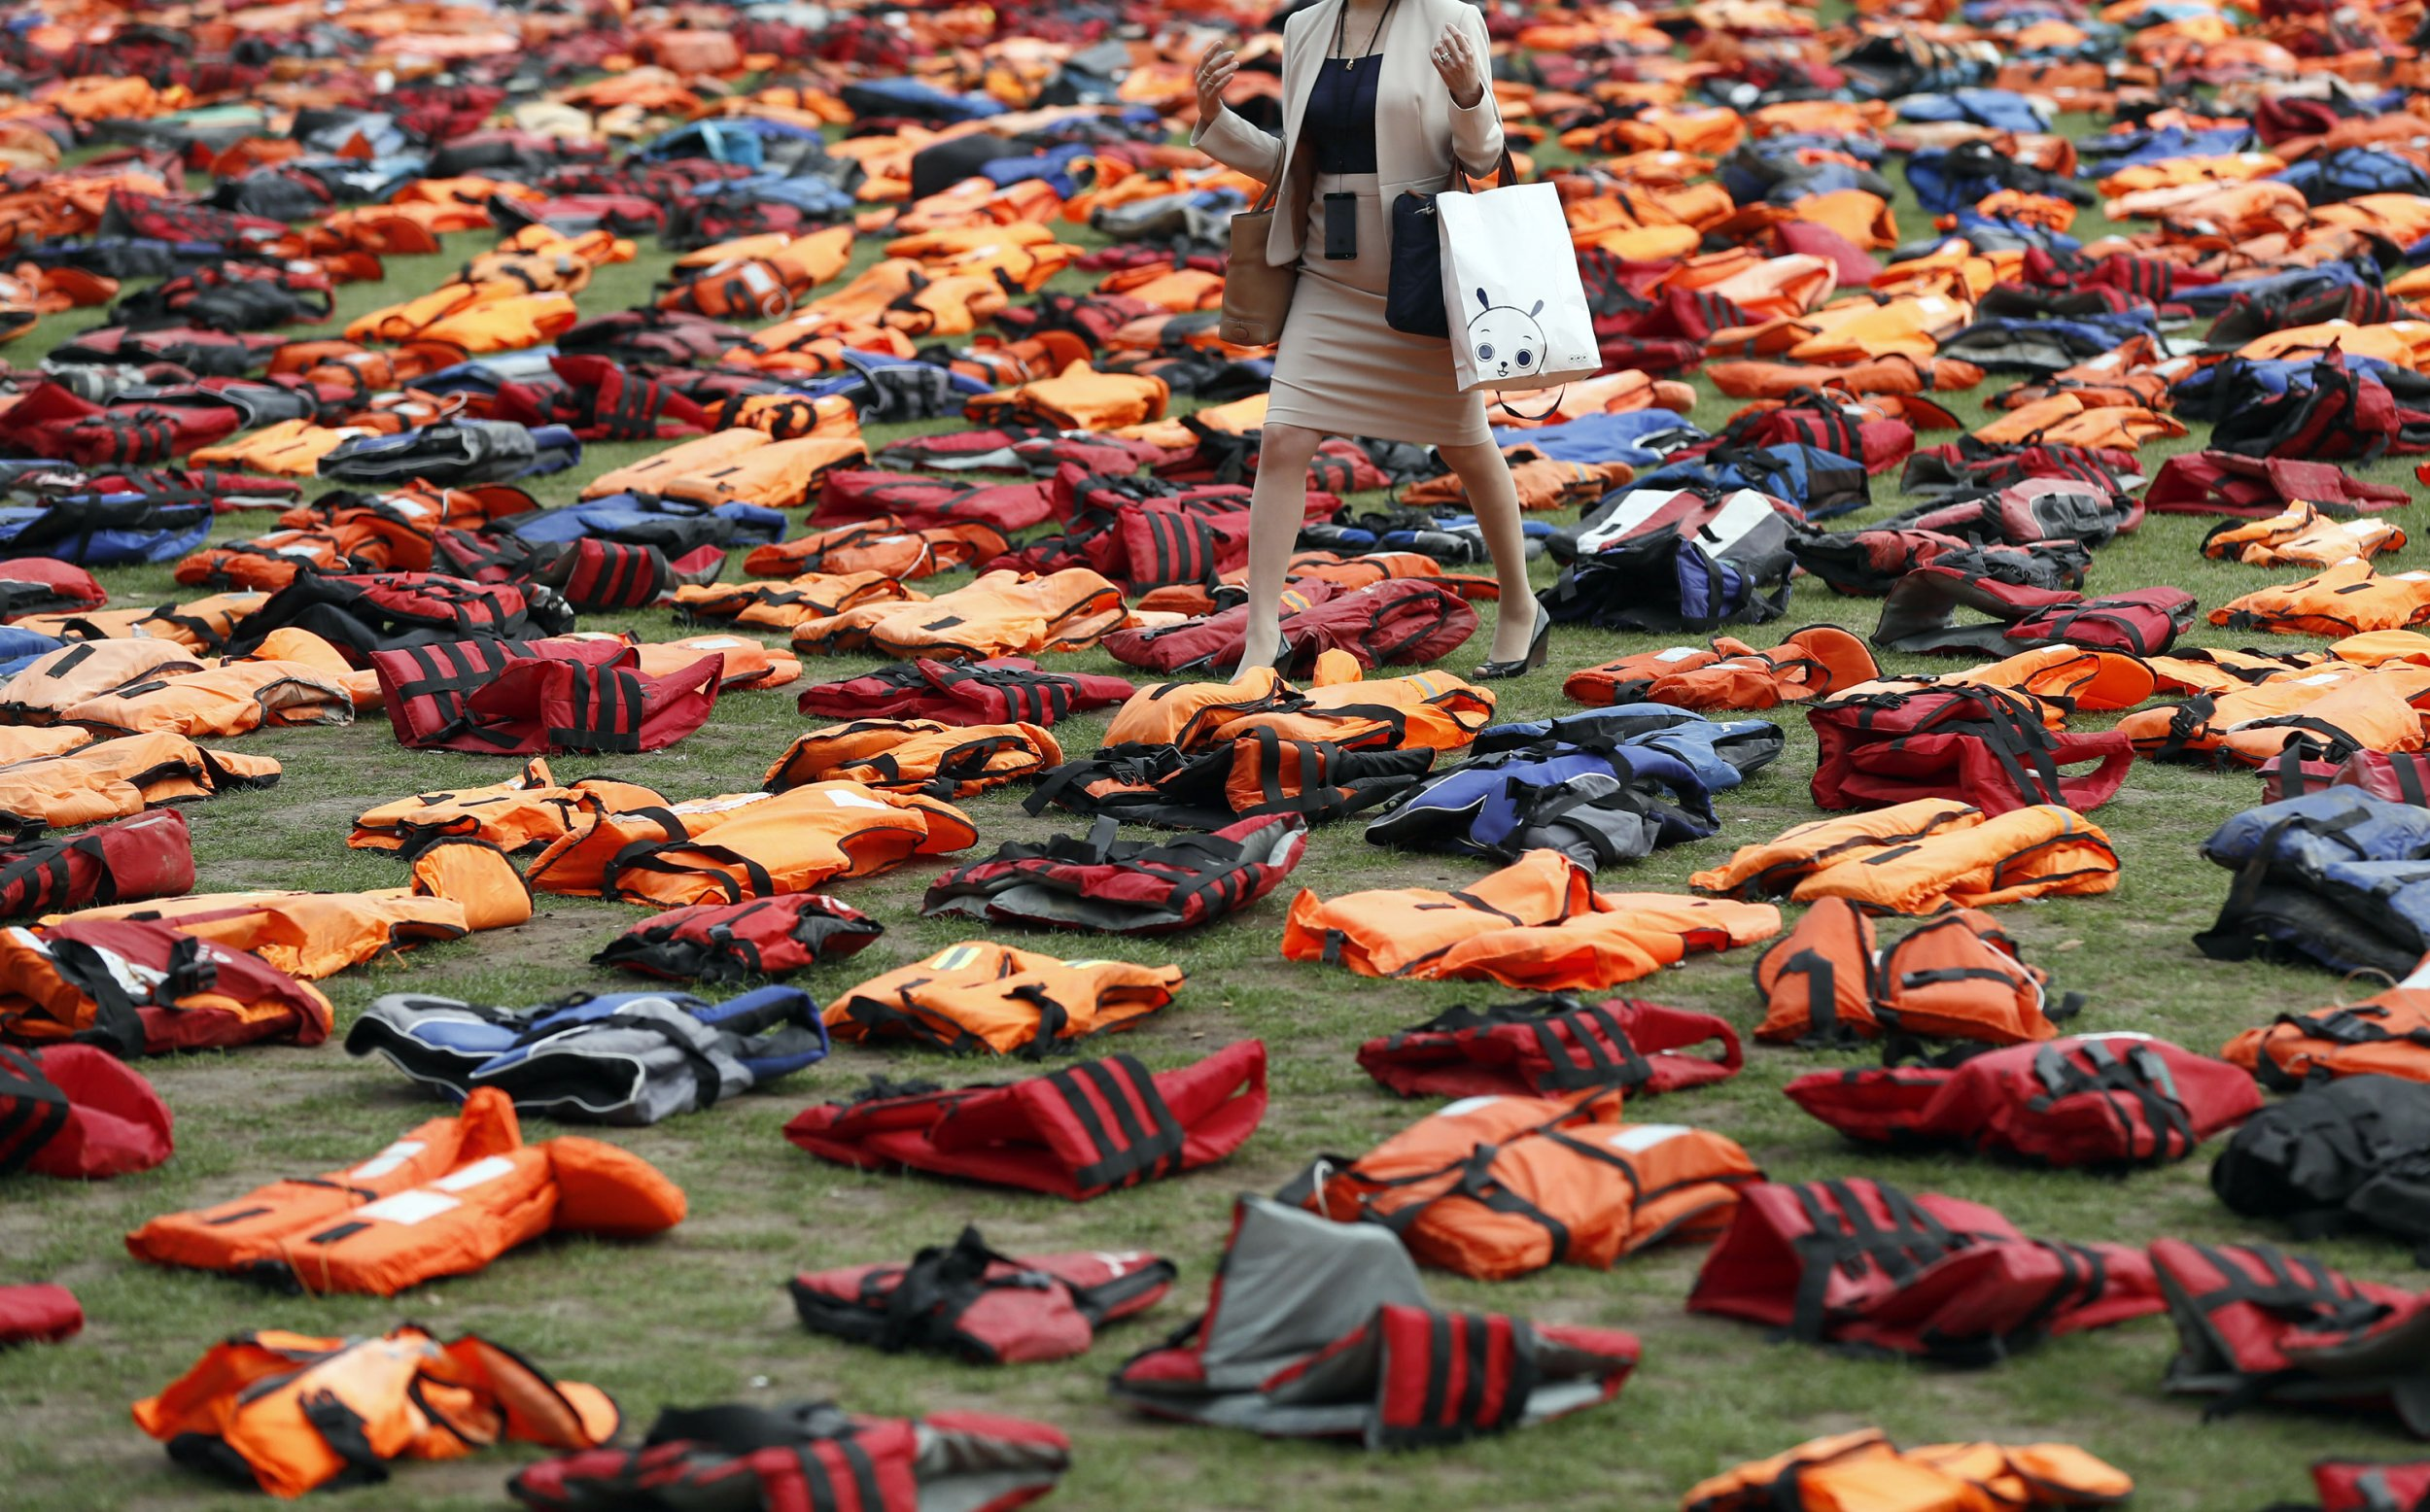 Migrants' lifejackets